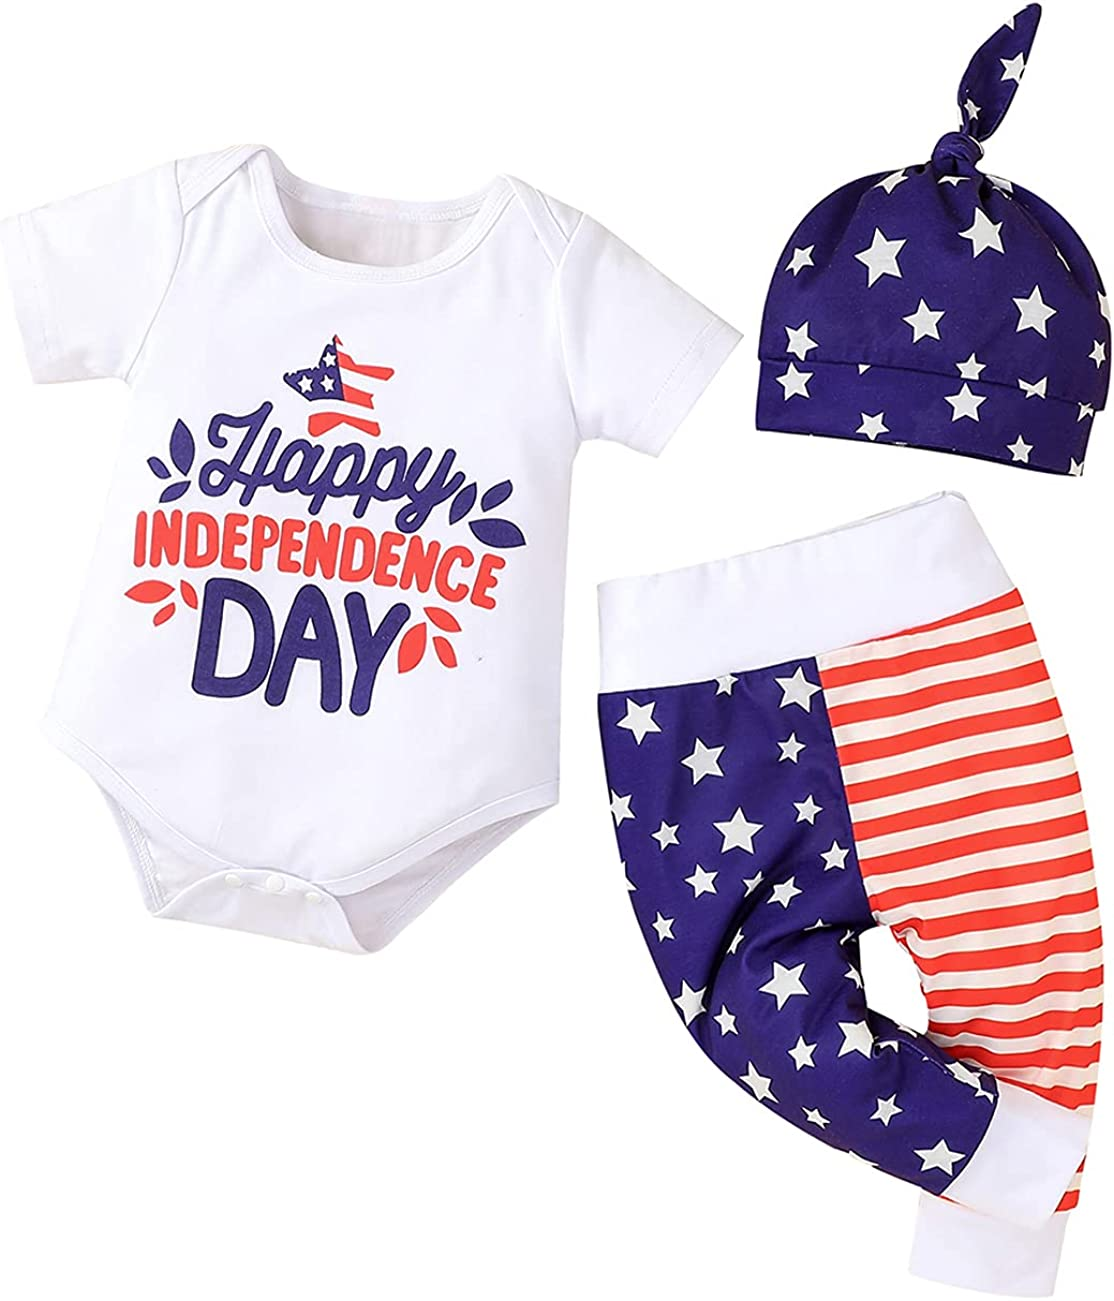 Newborn Baby Boy 4th of July Outfits Short Sleeve Romper American Flag Striped Long Pants+Hat